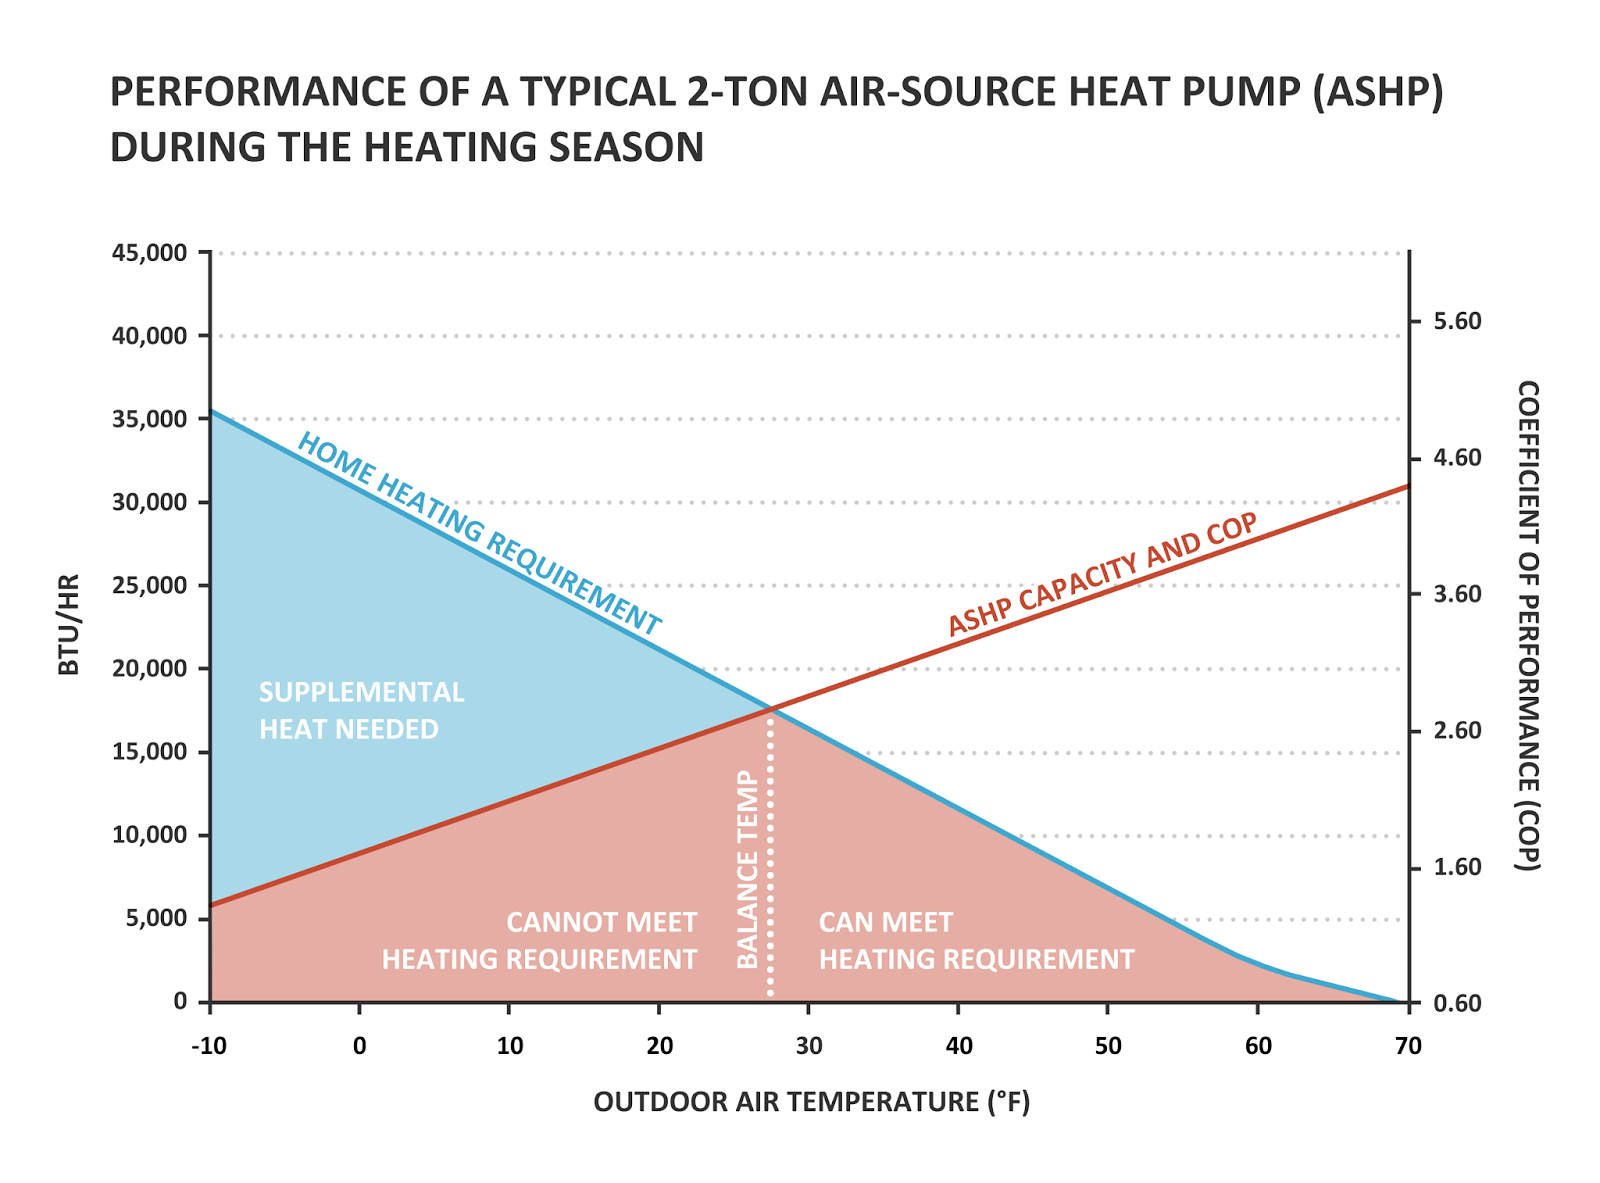 Air Source Heat Pump Capacity Vs Heating Requirement Adapted From Efficiency Gains Low Ambient Temperature Operation Using